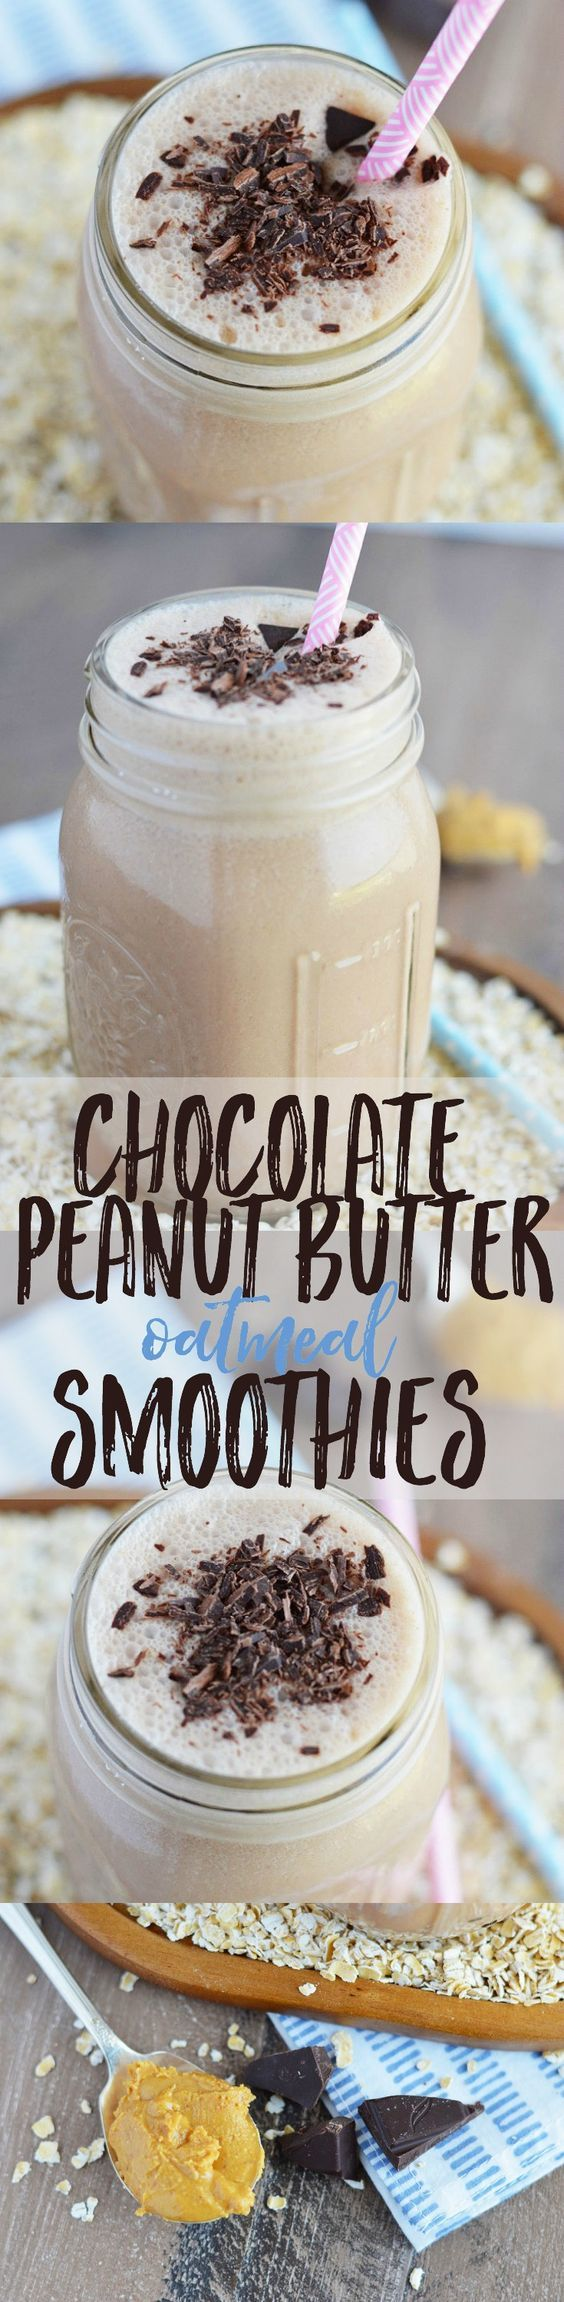 Chocolate Peanut Butter Oatmeal Smoothies from What The Fork Food Blog. These smoothies are healthy, filling, and full of flavors you love - they make a great on-the-go breakfast! | whattheforkfoodbl... | #QuakerSummit #sponsored by @QuakerOats